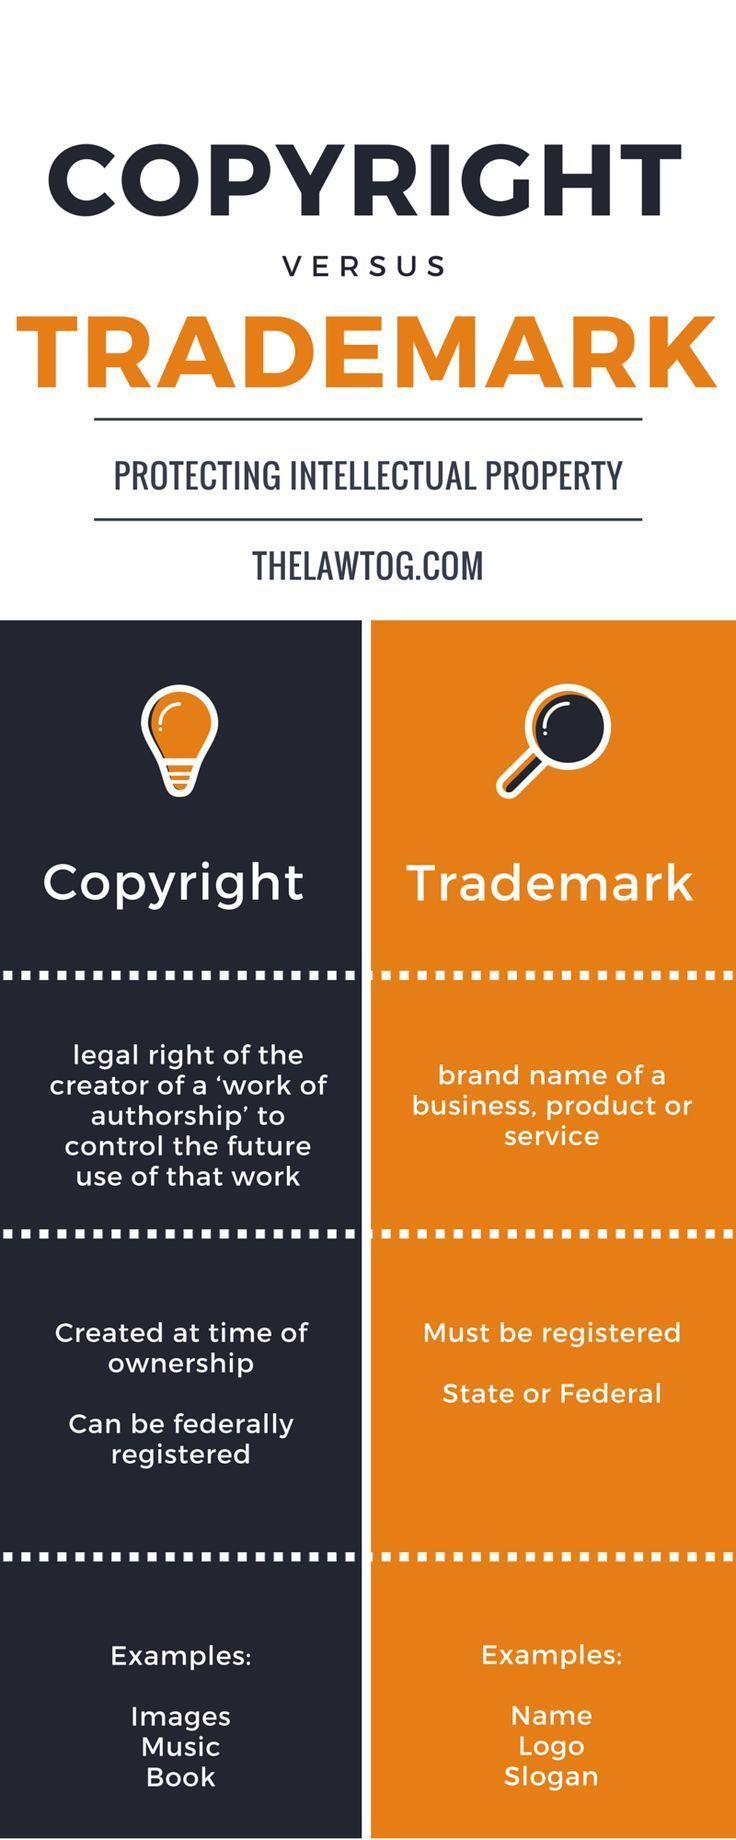 Copyright Versus Trademark for Photography Businesses